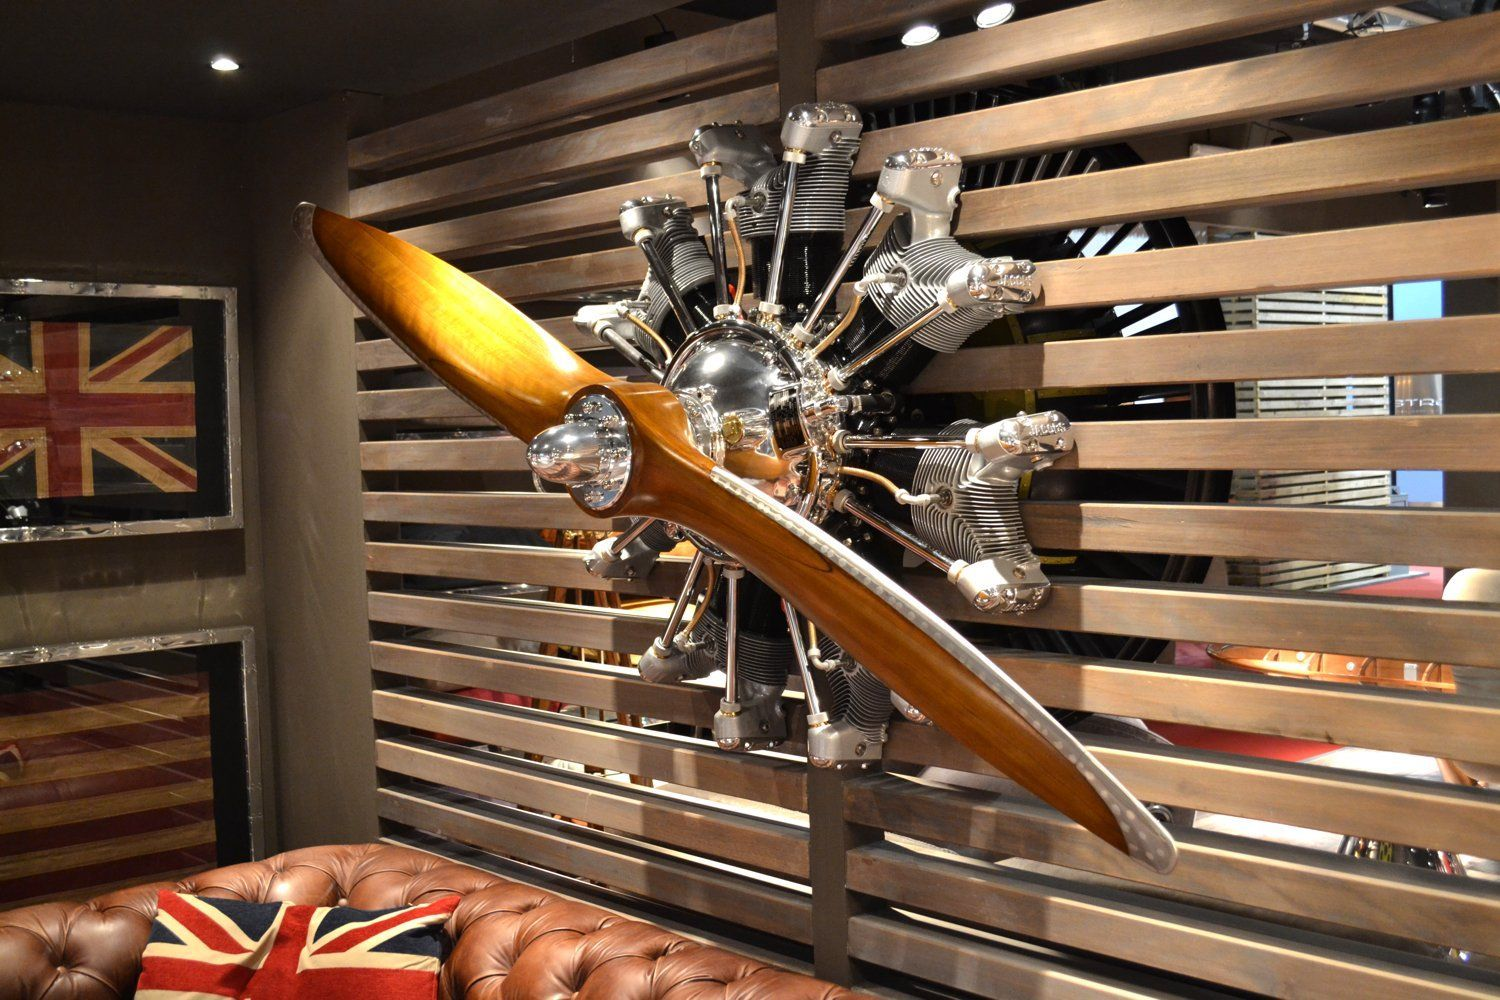 Wall Hanged Jacobs Radial Engine Aeronautic Collection Aviationfurniture Airplane Decor Propeller Decor Aviation Furniture